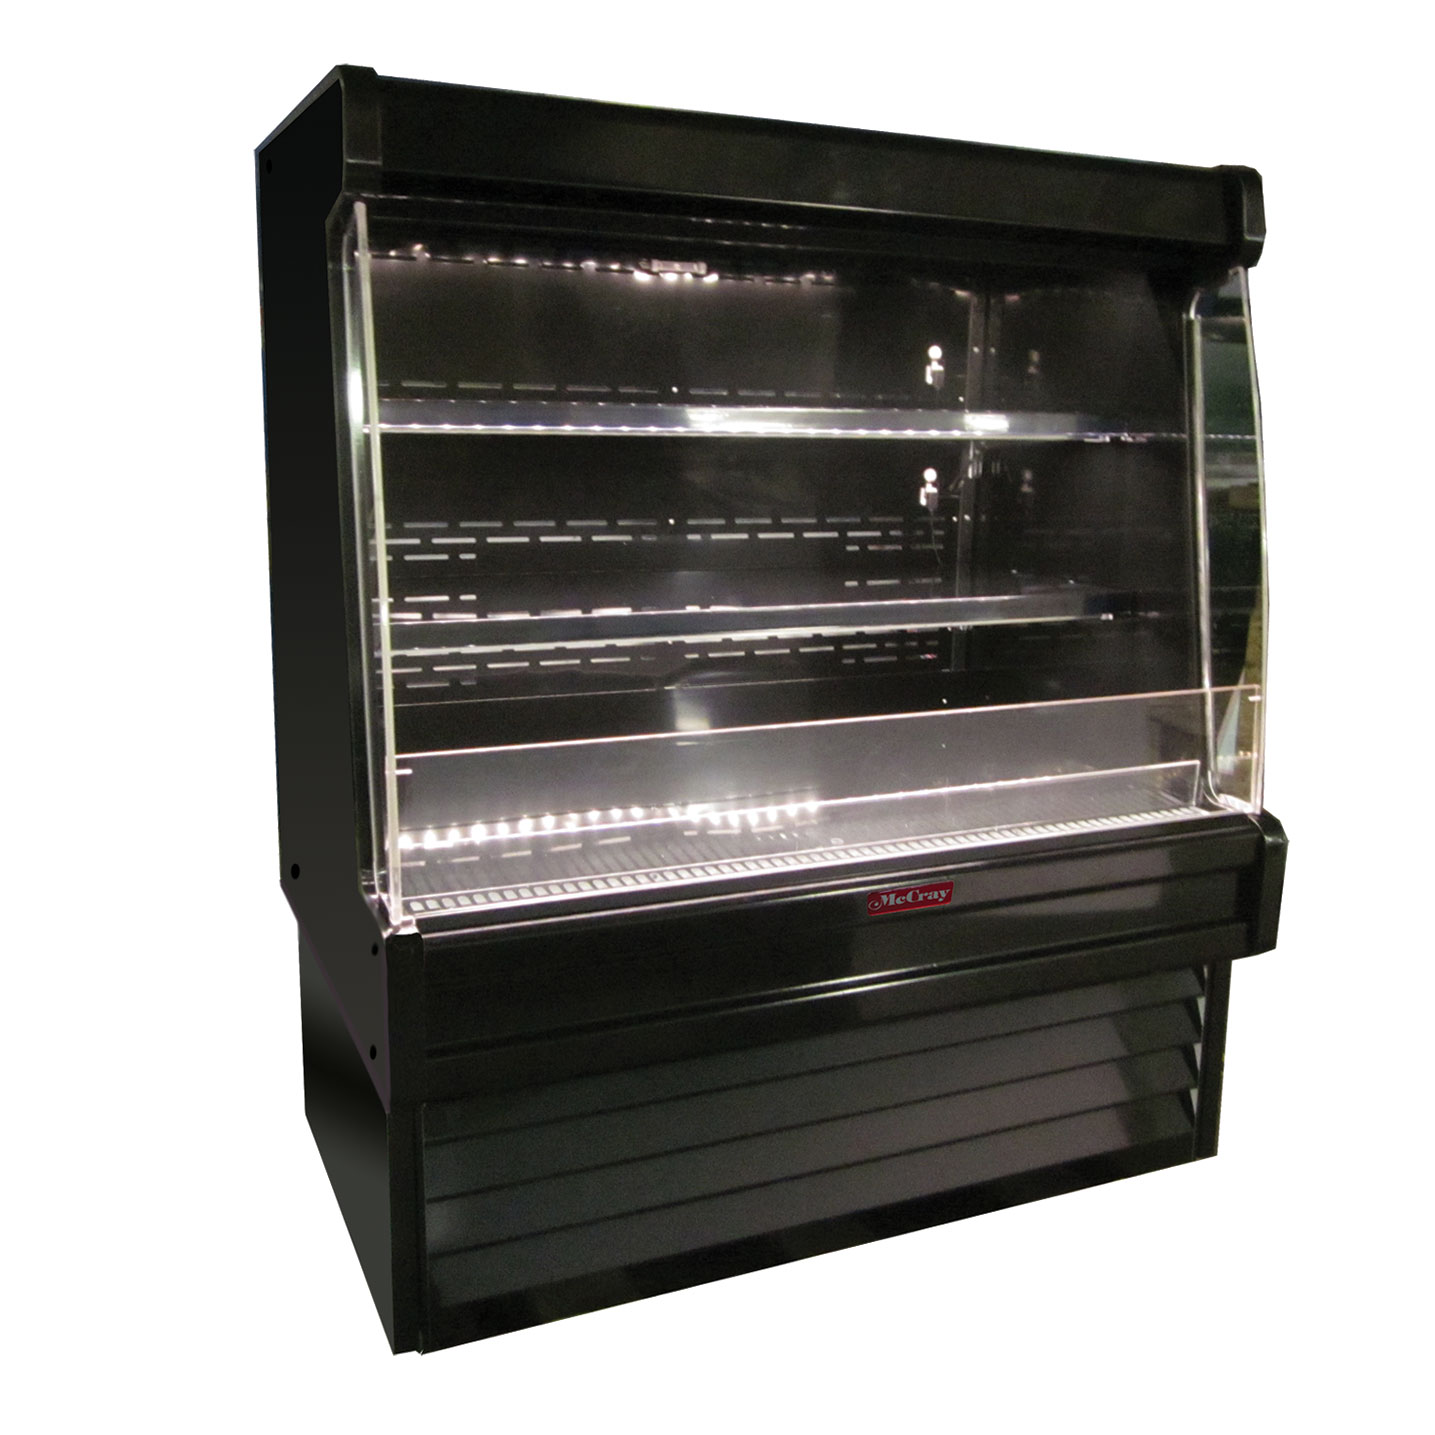 Howard-McCray SC-OP35E-5L-LED display case, produce